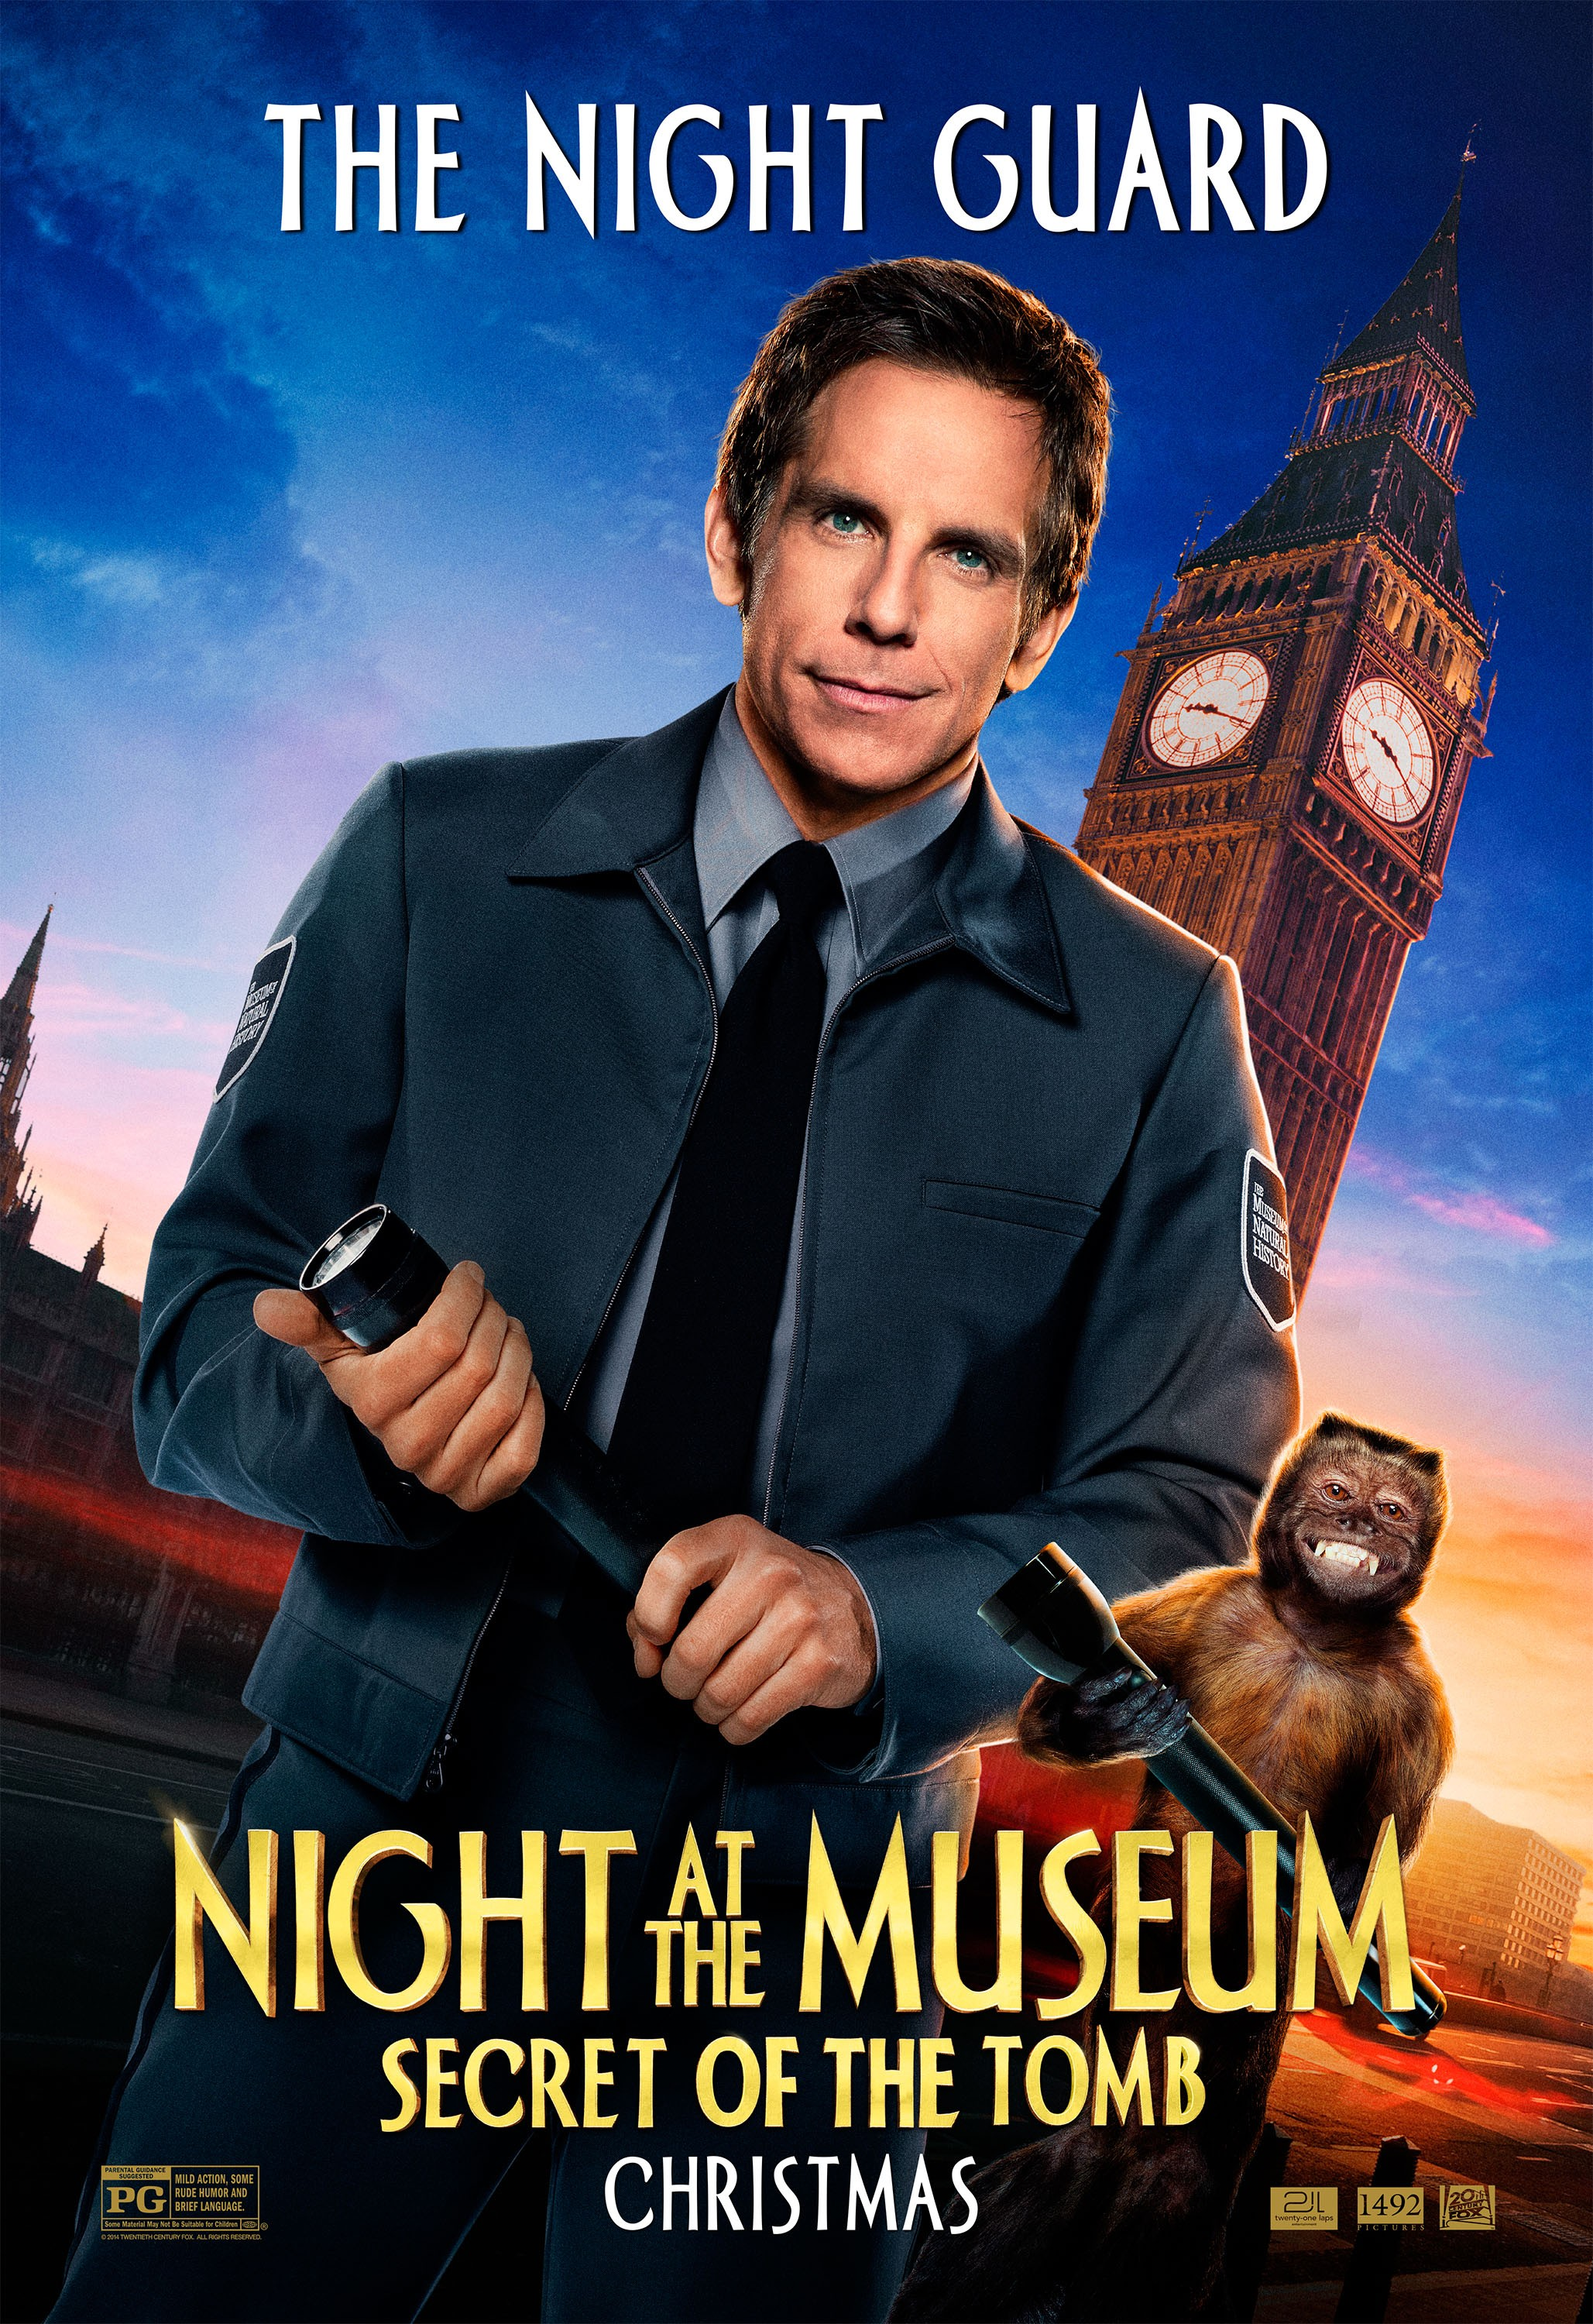 Night At The Museum: Secret Of The Tomb Backgrounds, Compatible - PC, Mobile, Gadgets| 2057x3000 px